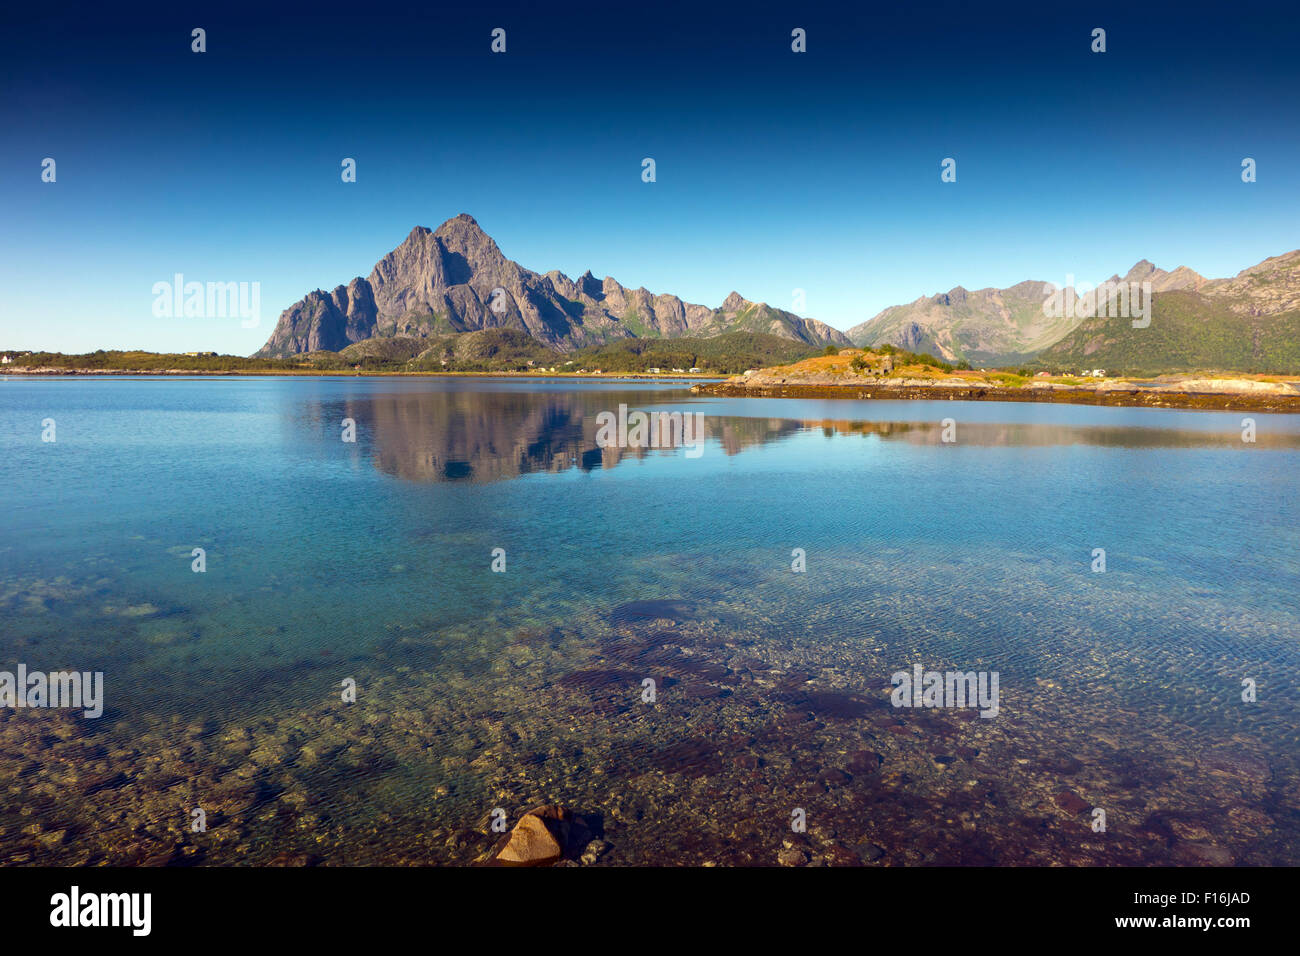 Tranquil conditions with reflections, Orsvagvaer, with Vagakallen mountain Lofoten, Arctic Norway, - Stock Image